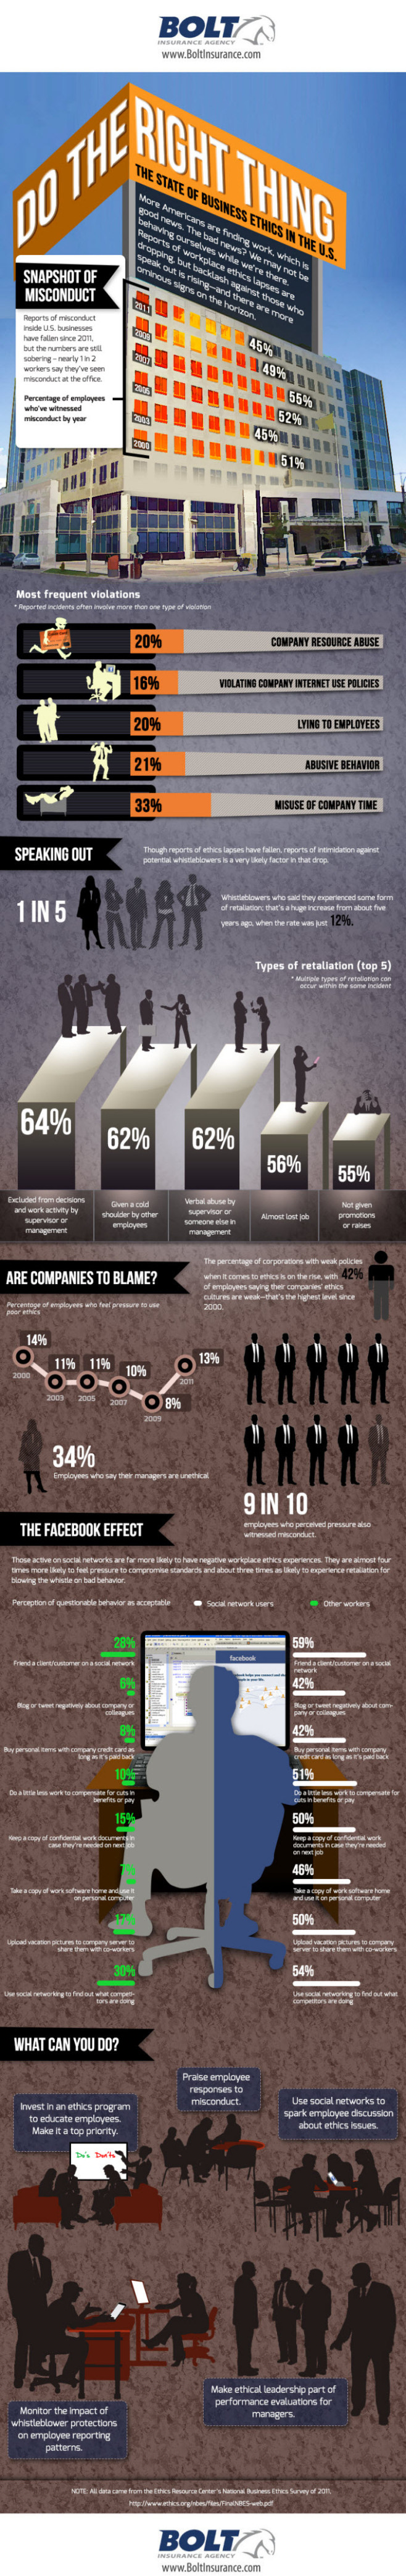 State of Business Ethics in the U.S. Infographic